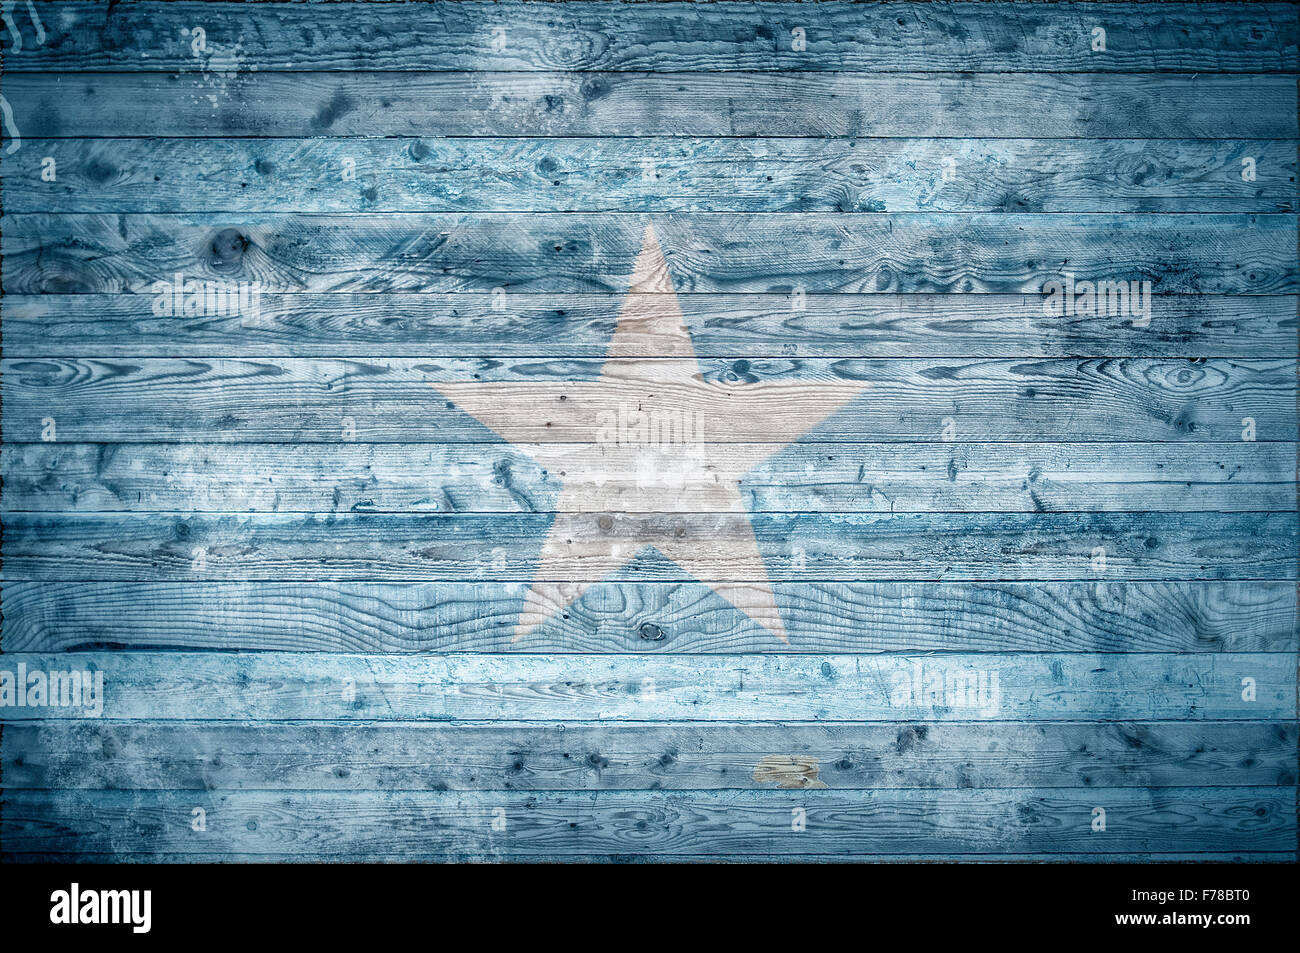 A vignetted background image of the flag of Somalia onto wooden boards of a wall or floor. - Stock Image